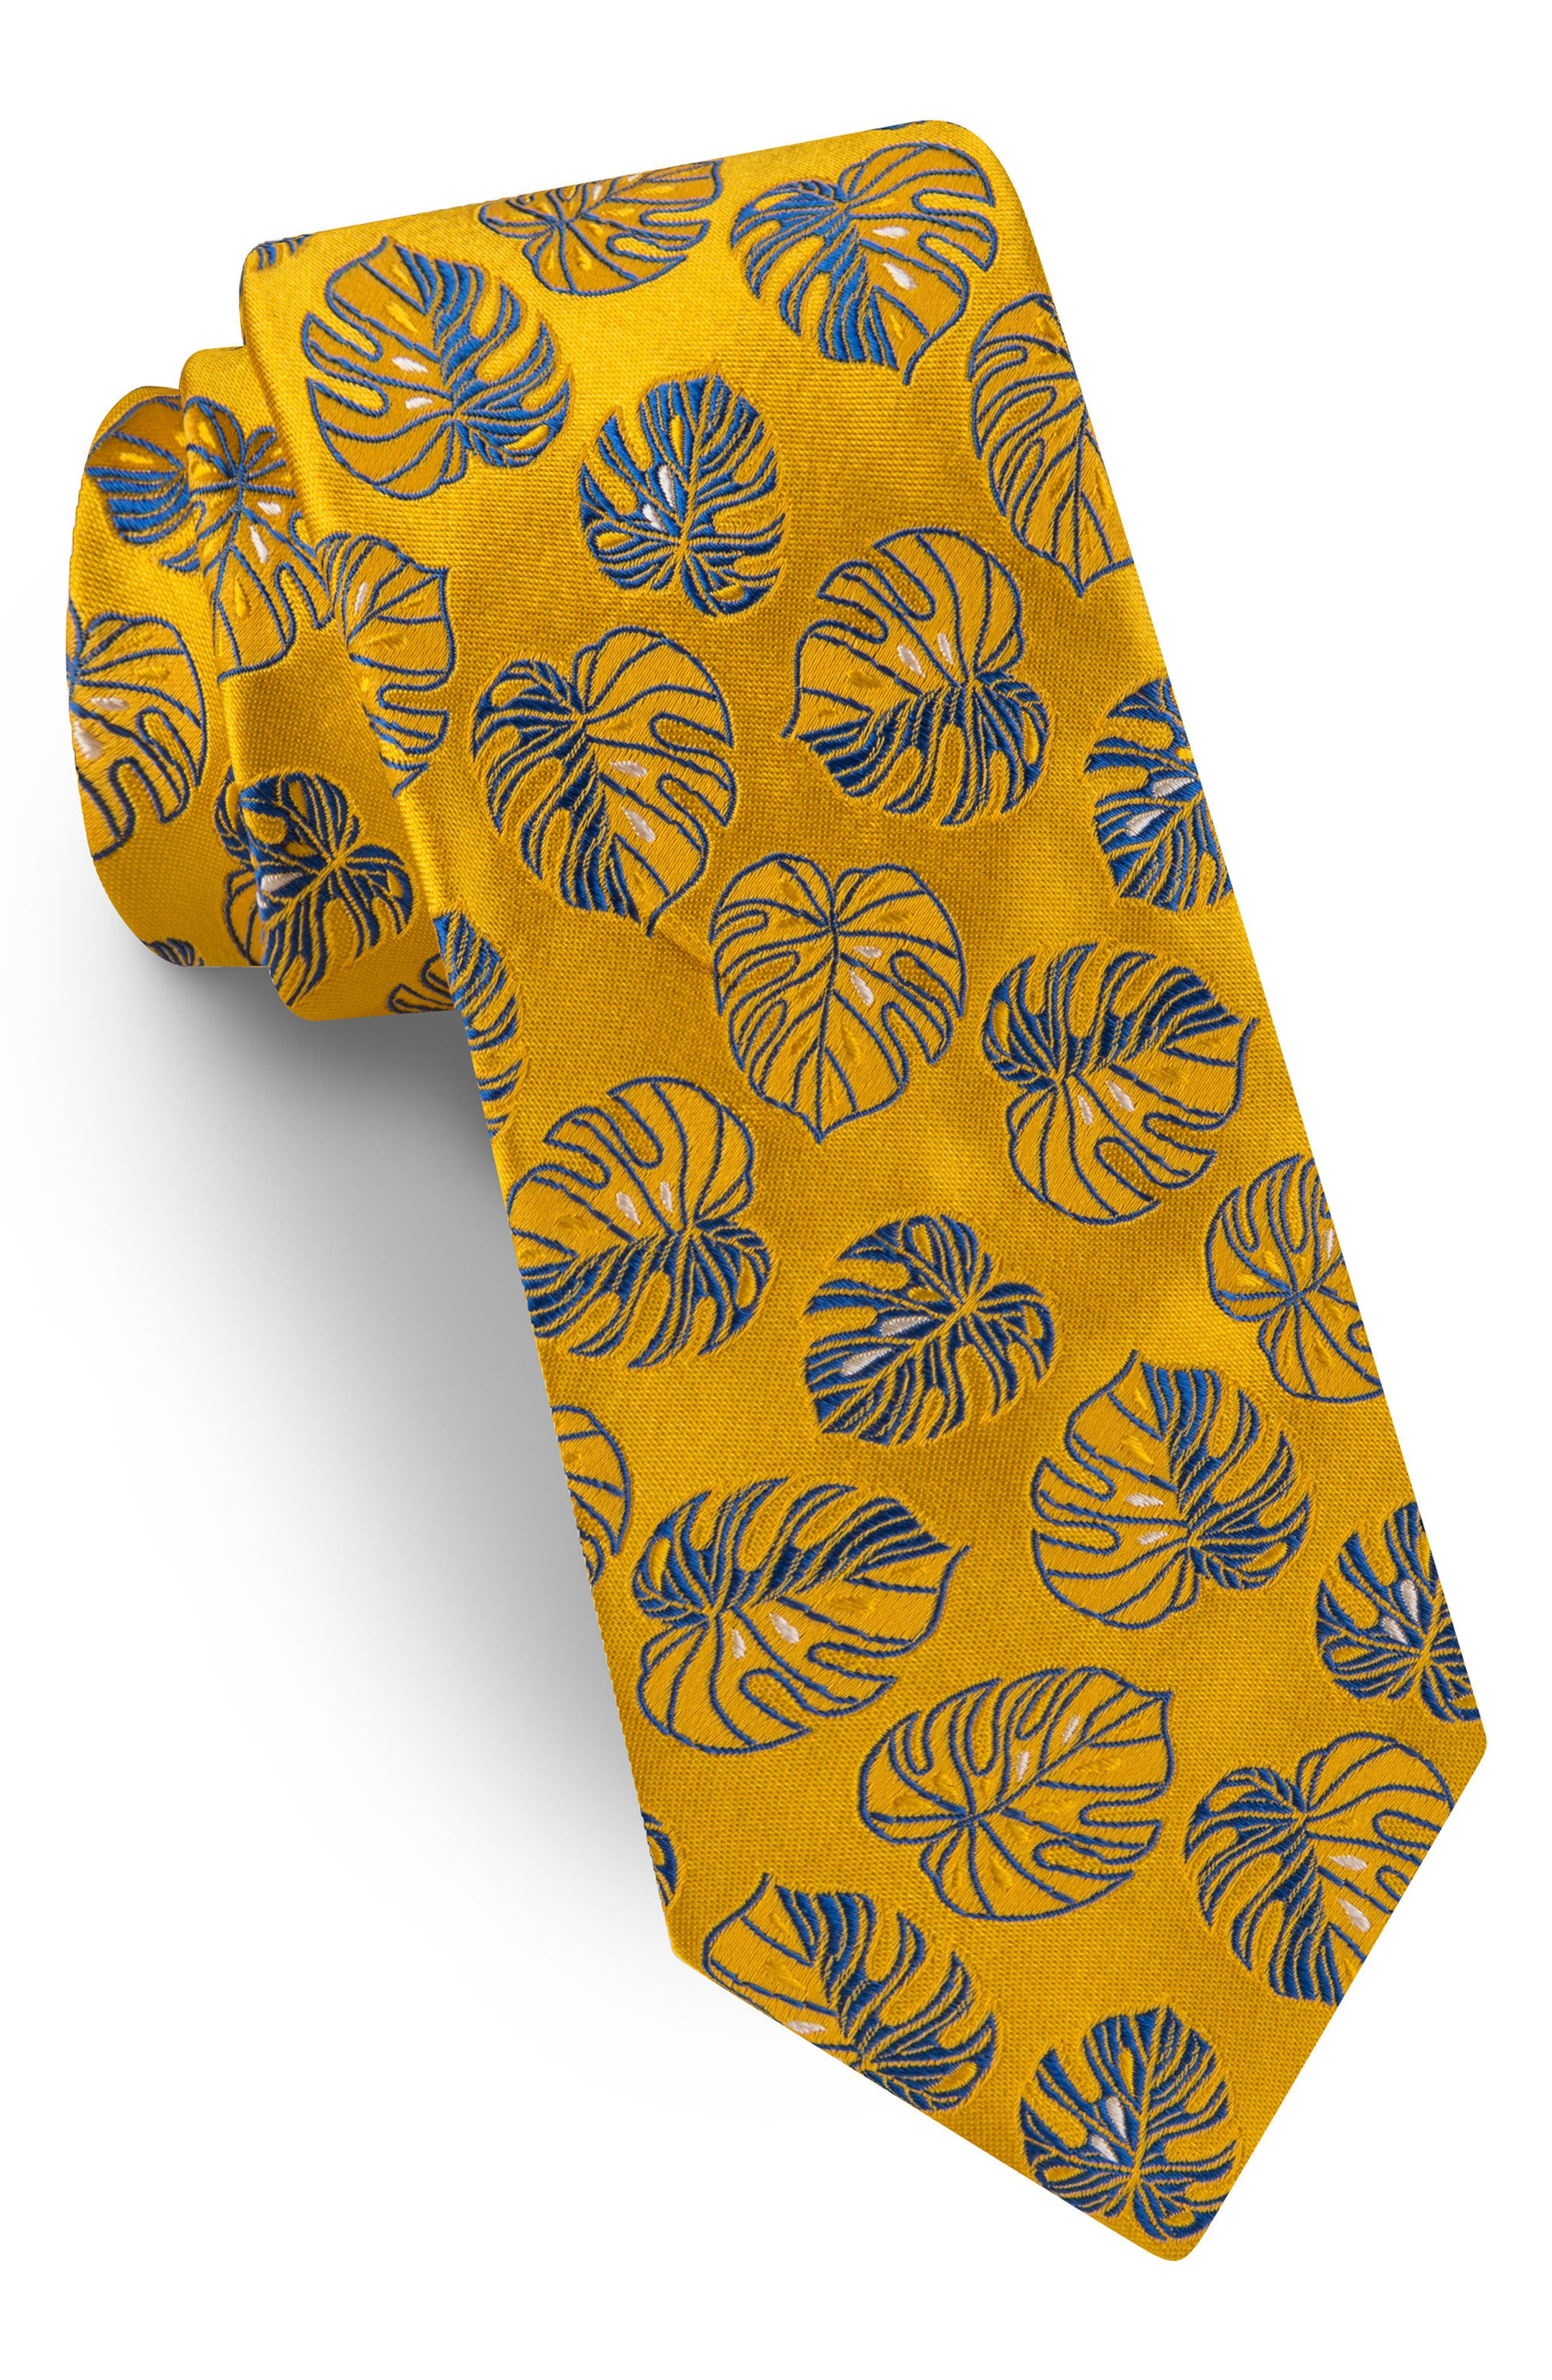 Banana Leaf Silk Tie,                             Main thumbnail 1, color,                             700